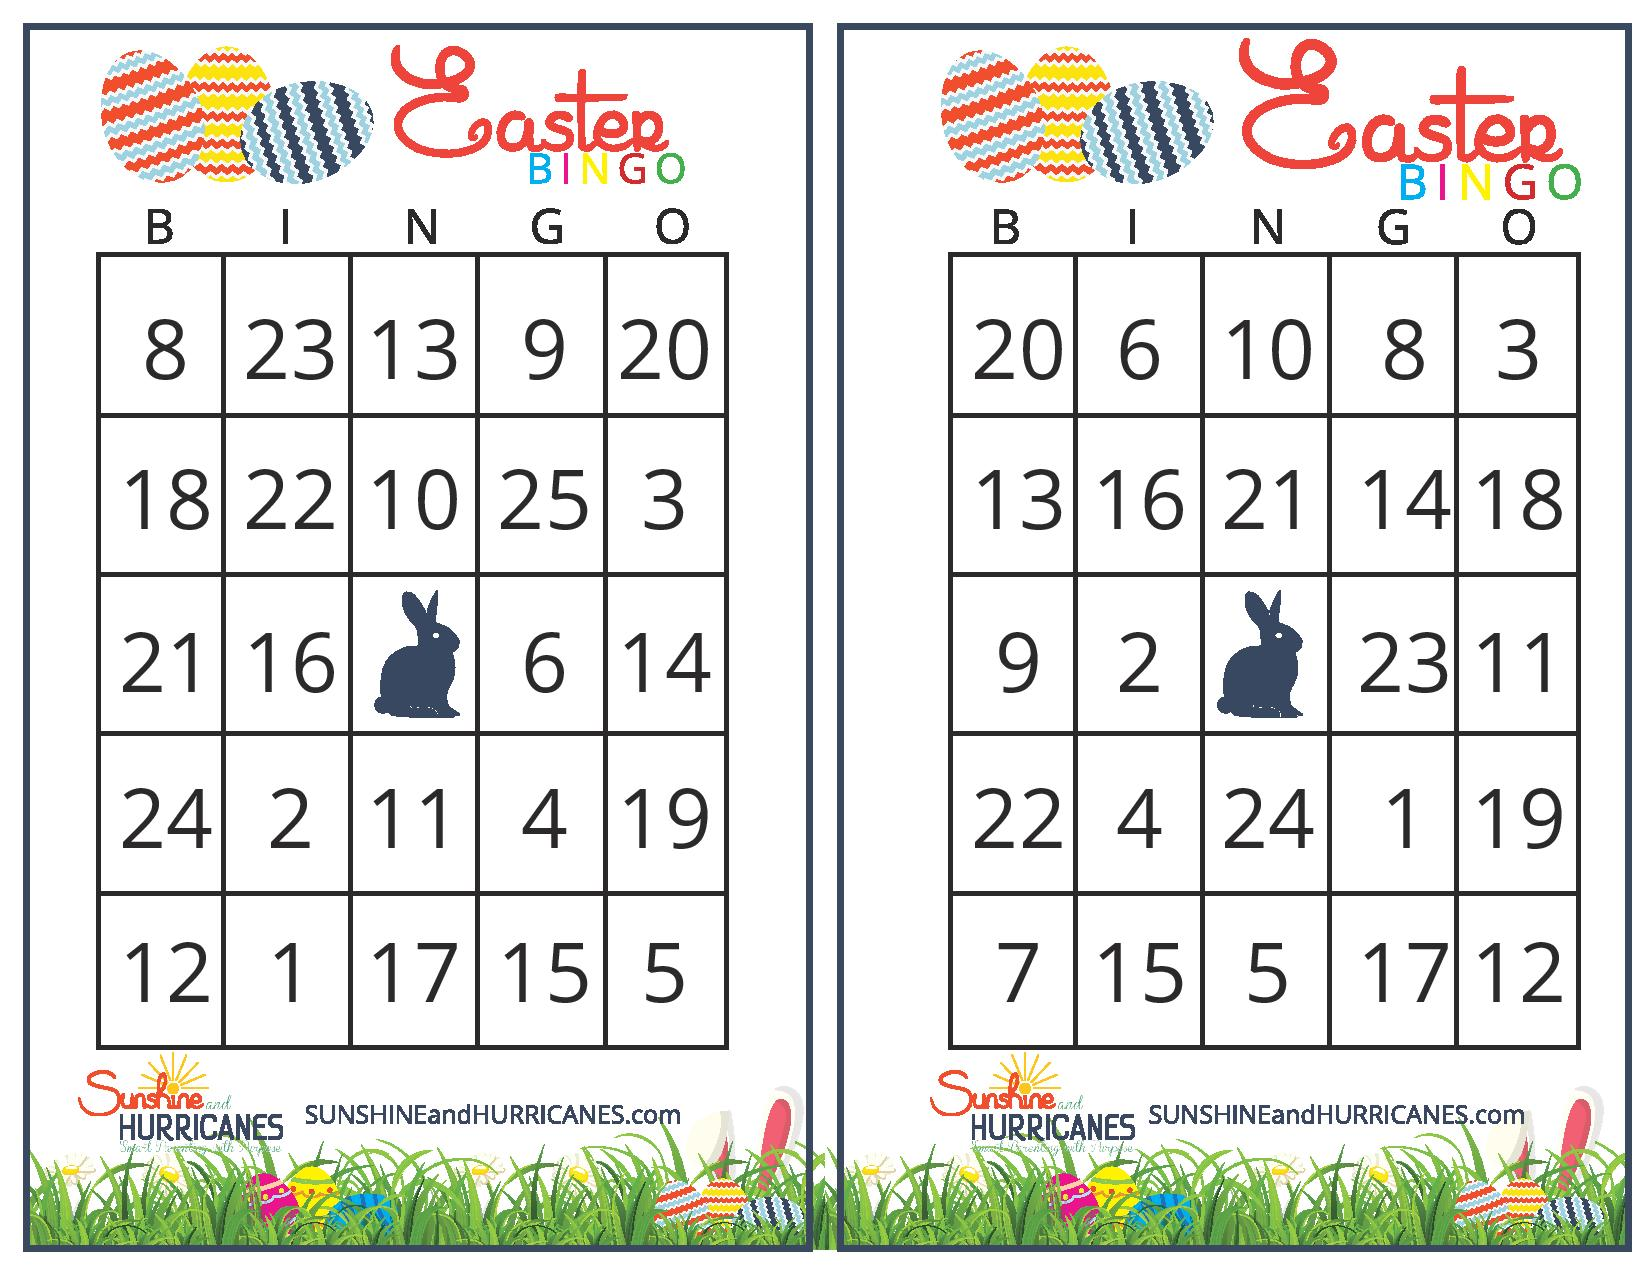 A great activity for a school Easter party or even for a family gathering with lots of kiddos! Easter Bingo - Printable Easter Games. SunshineandHurricanes.com